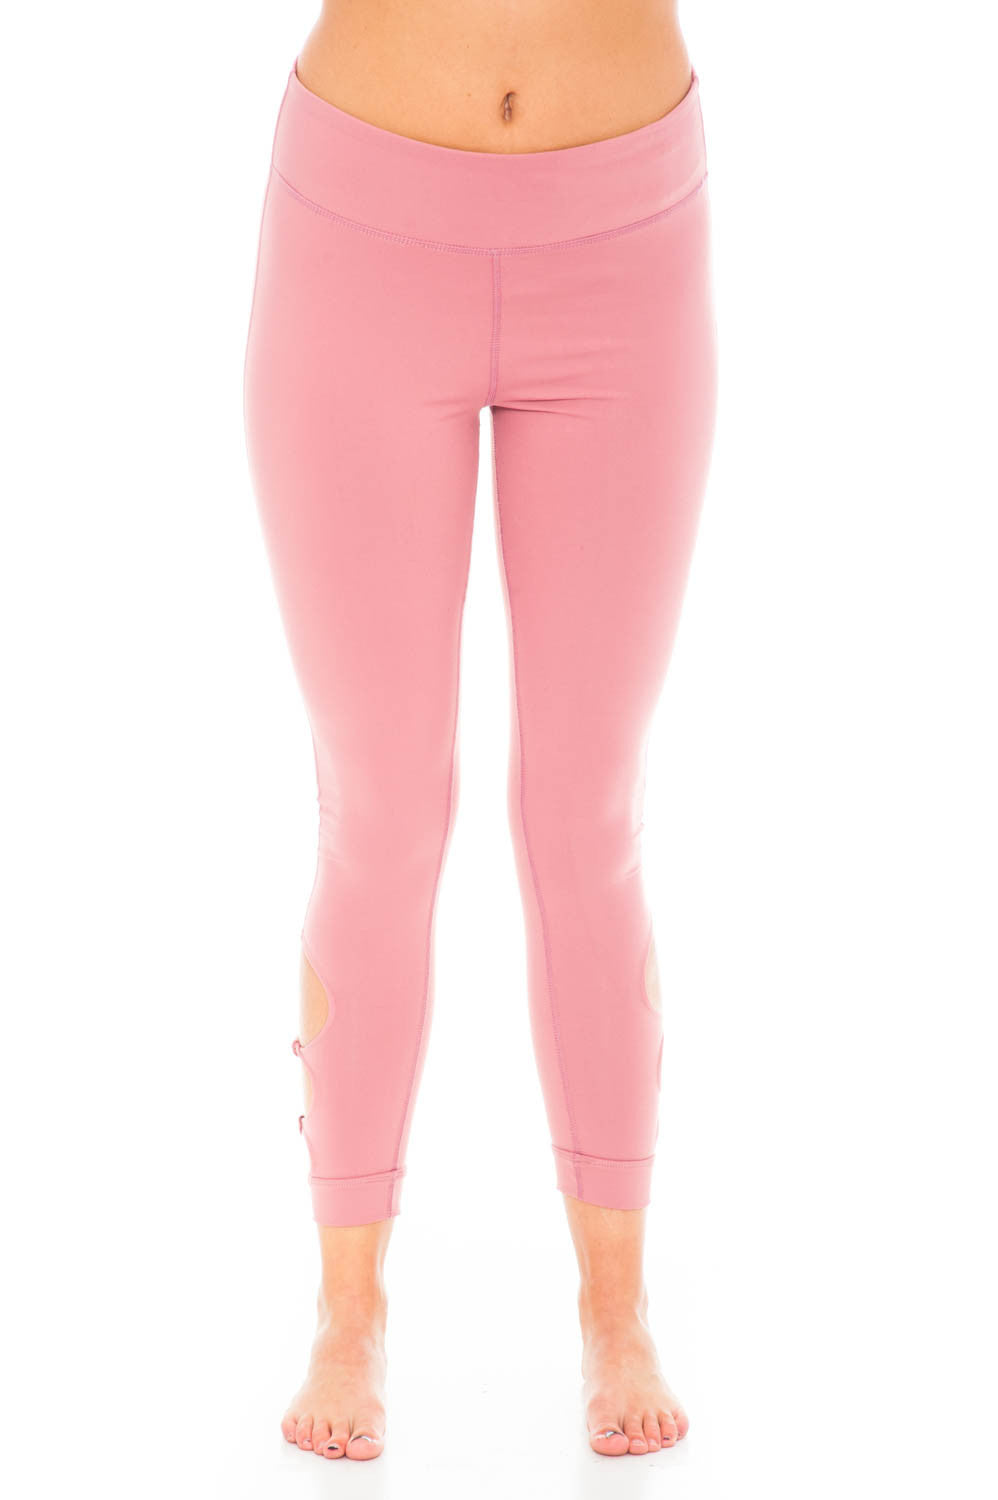 Legging - Knotted Legging By Motion By Coalition